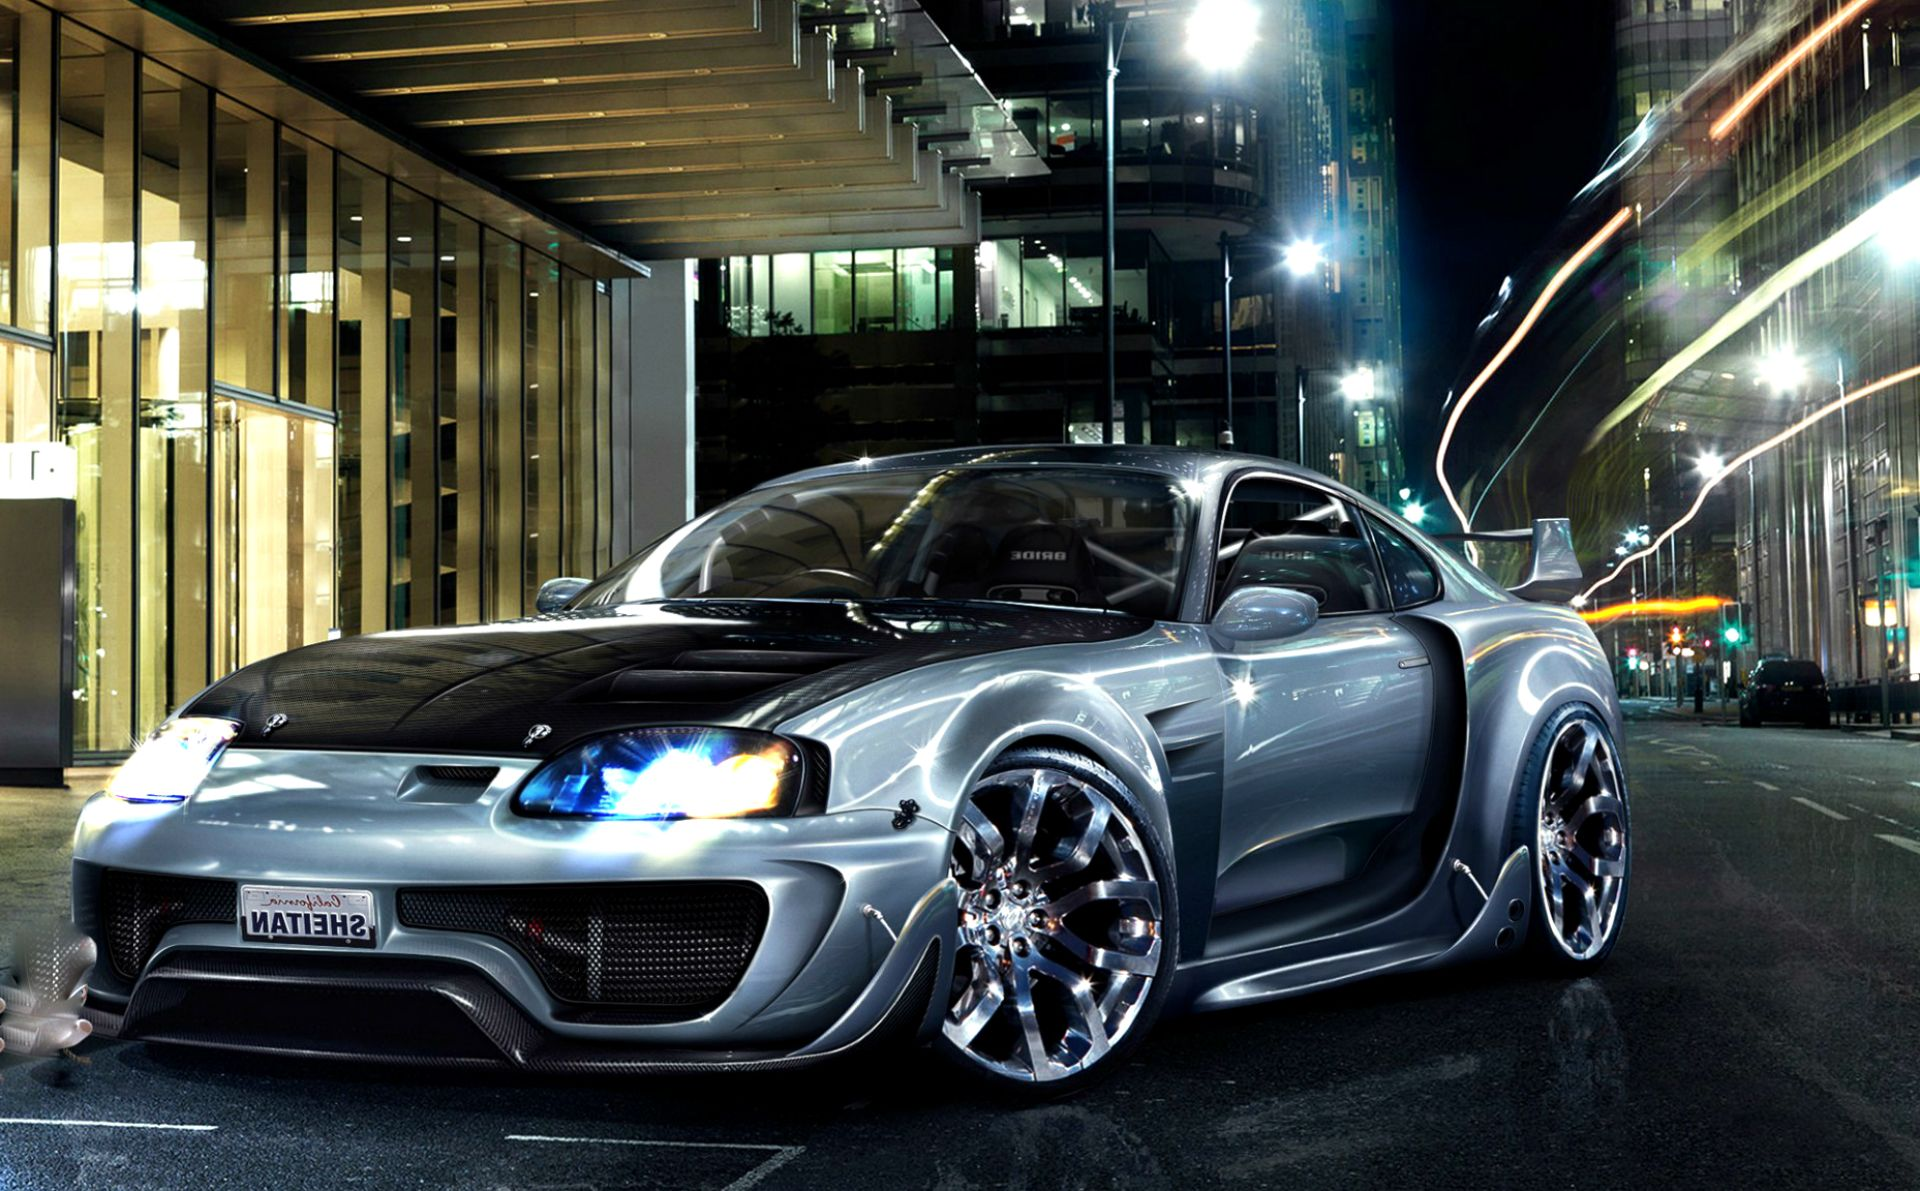 3840x2400 best hd wallpapers of cars, 4k ultra hd 16:10 desktop backgrounds for pc & Car Pictures Hd Wallpaper Download